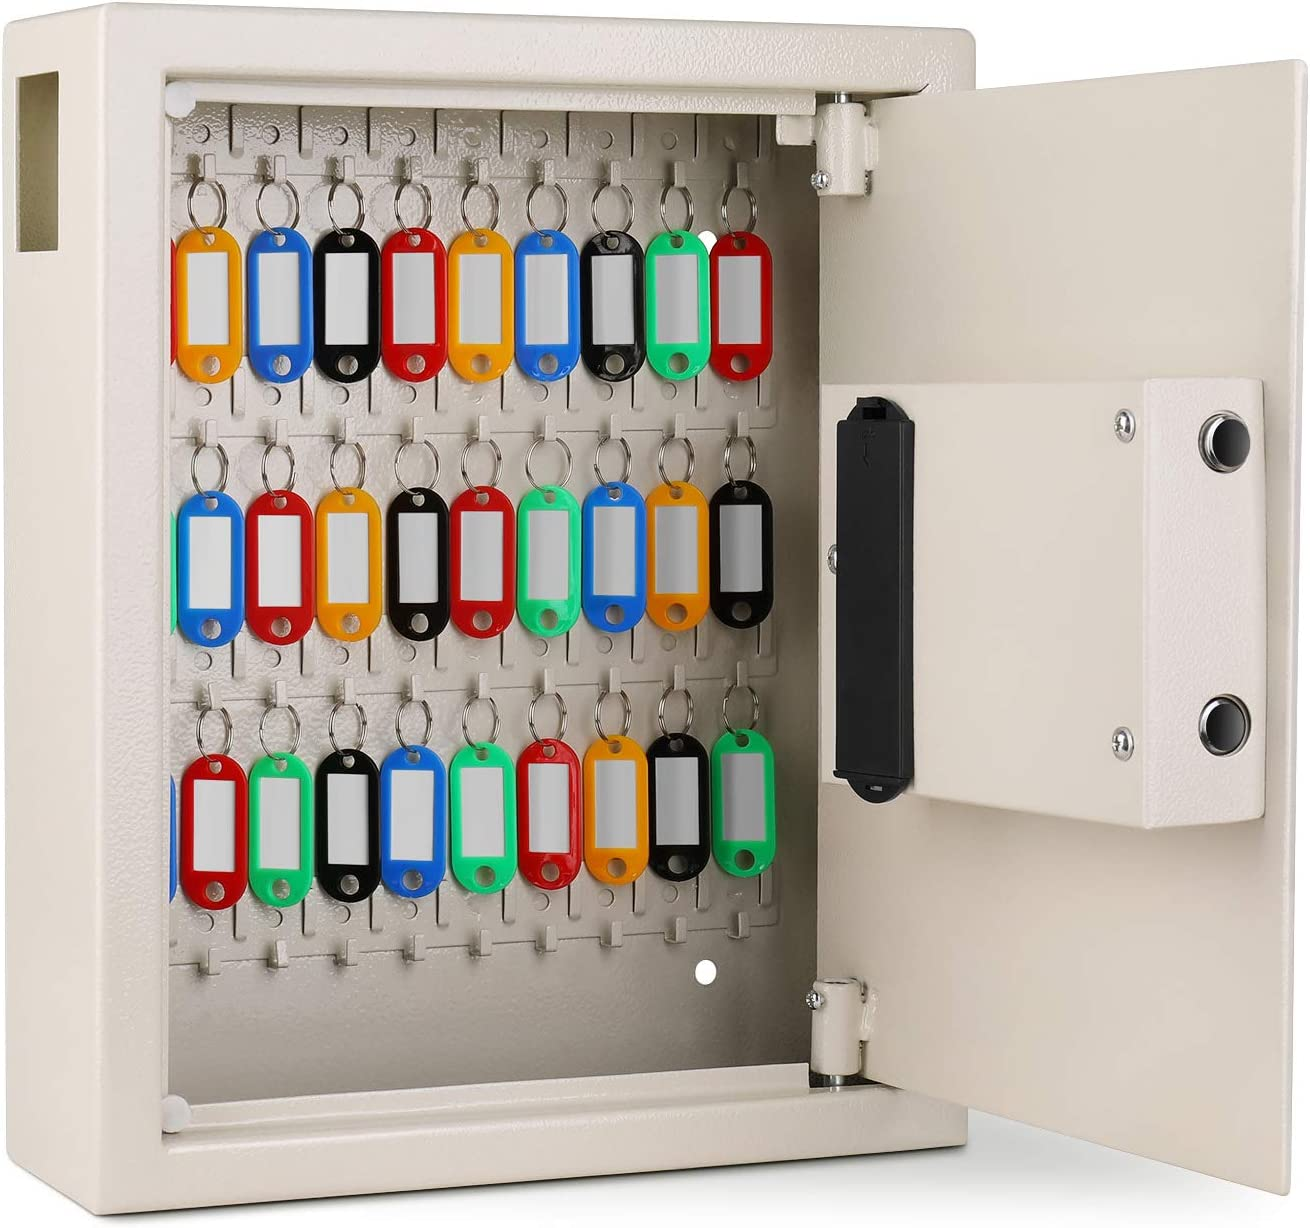 Security Storage Locker System for Homes Hotels Flexzion Key Cabinet with Electronic Digital Lock Wall Mounted Key Box 40 Key Capacity Colored Tags /& Hooks Businesses Gray Schools Safe Organizer